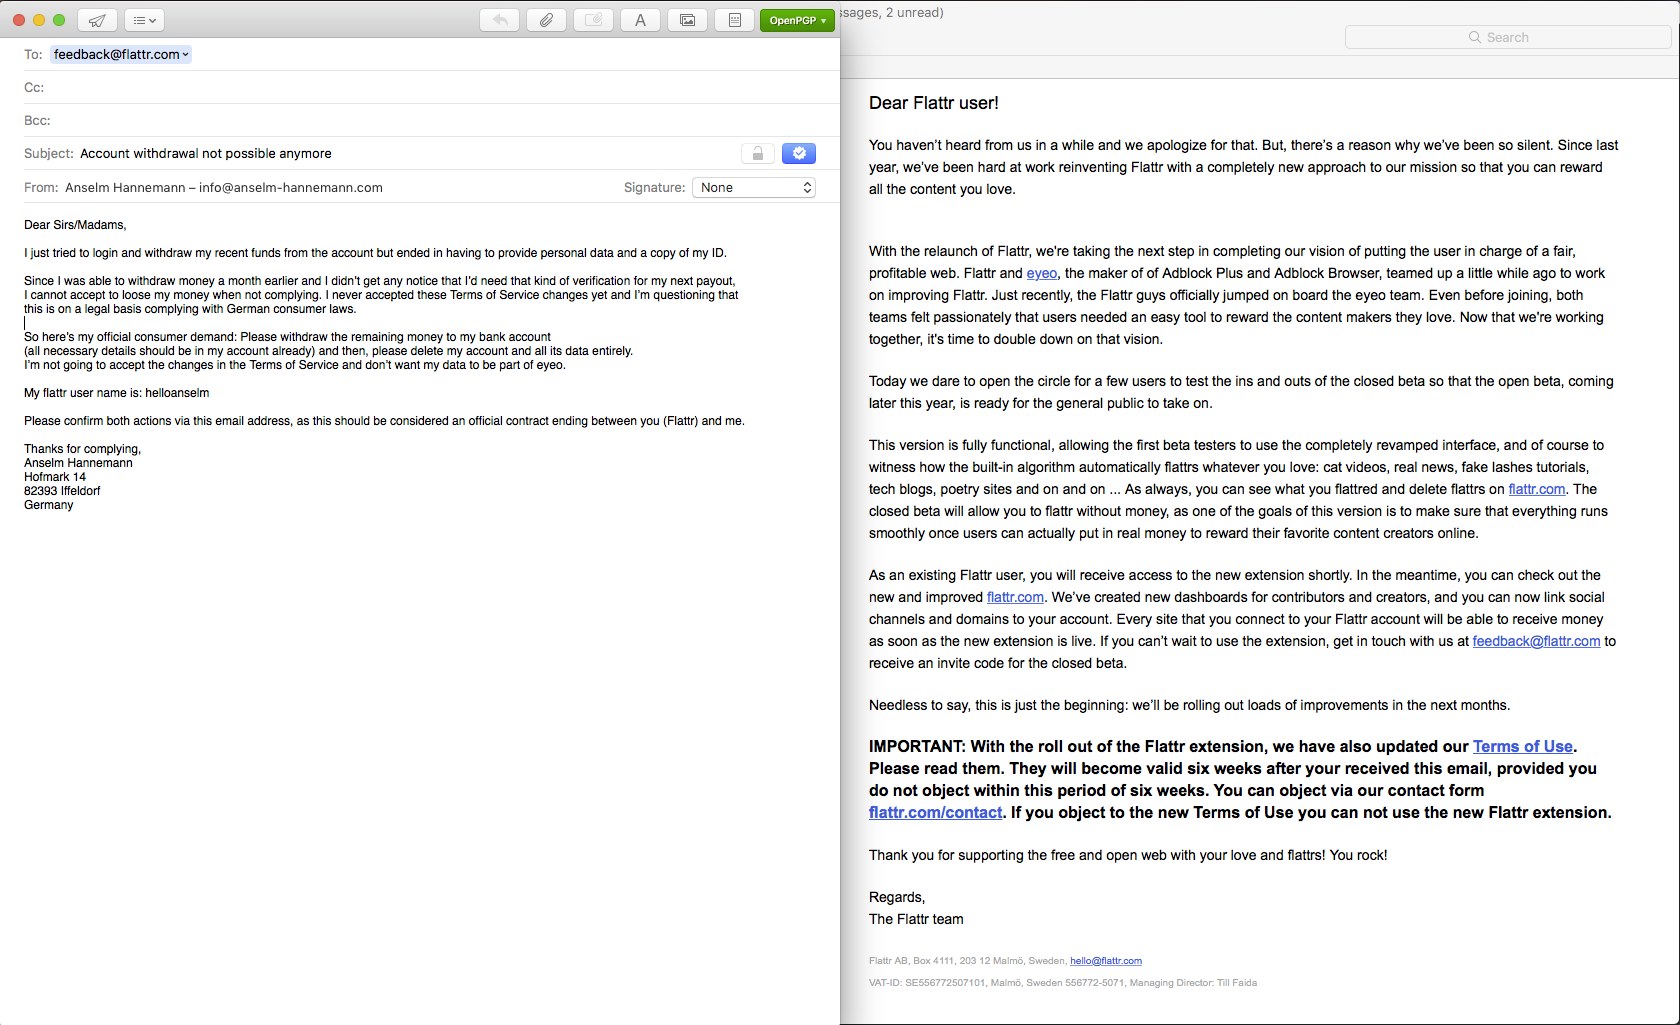 screenshots of my email reply to Flattr requesting my money back and to close my account